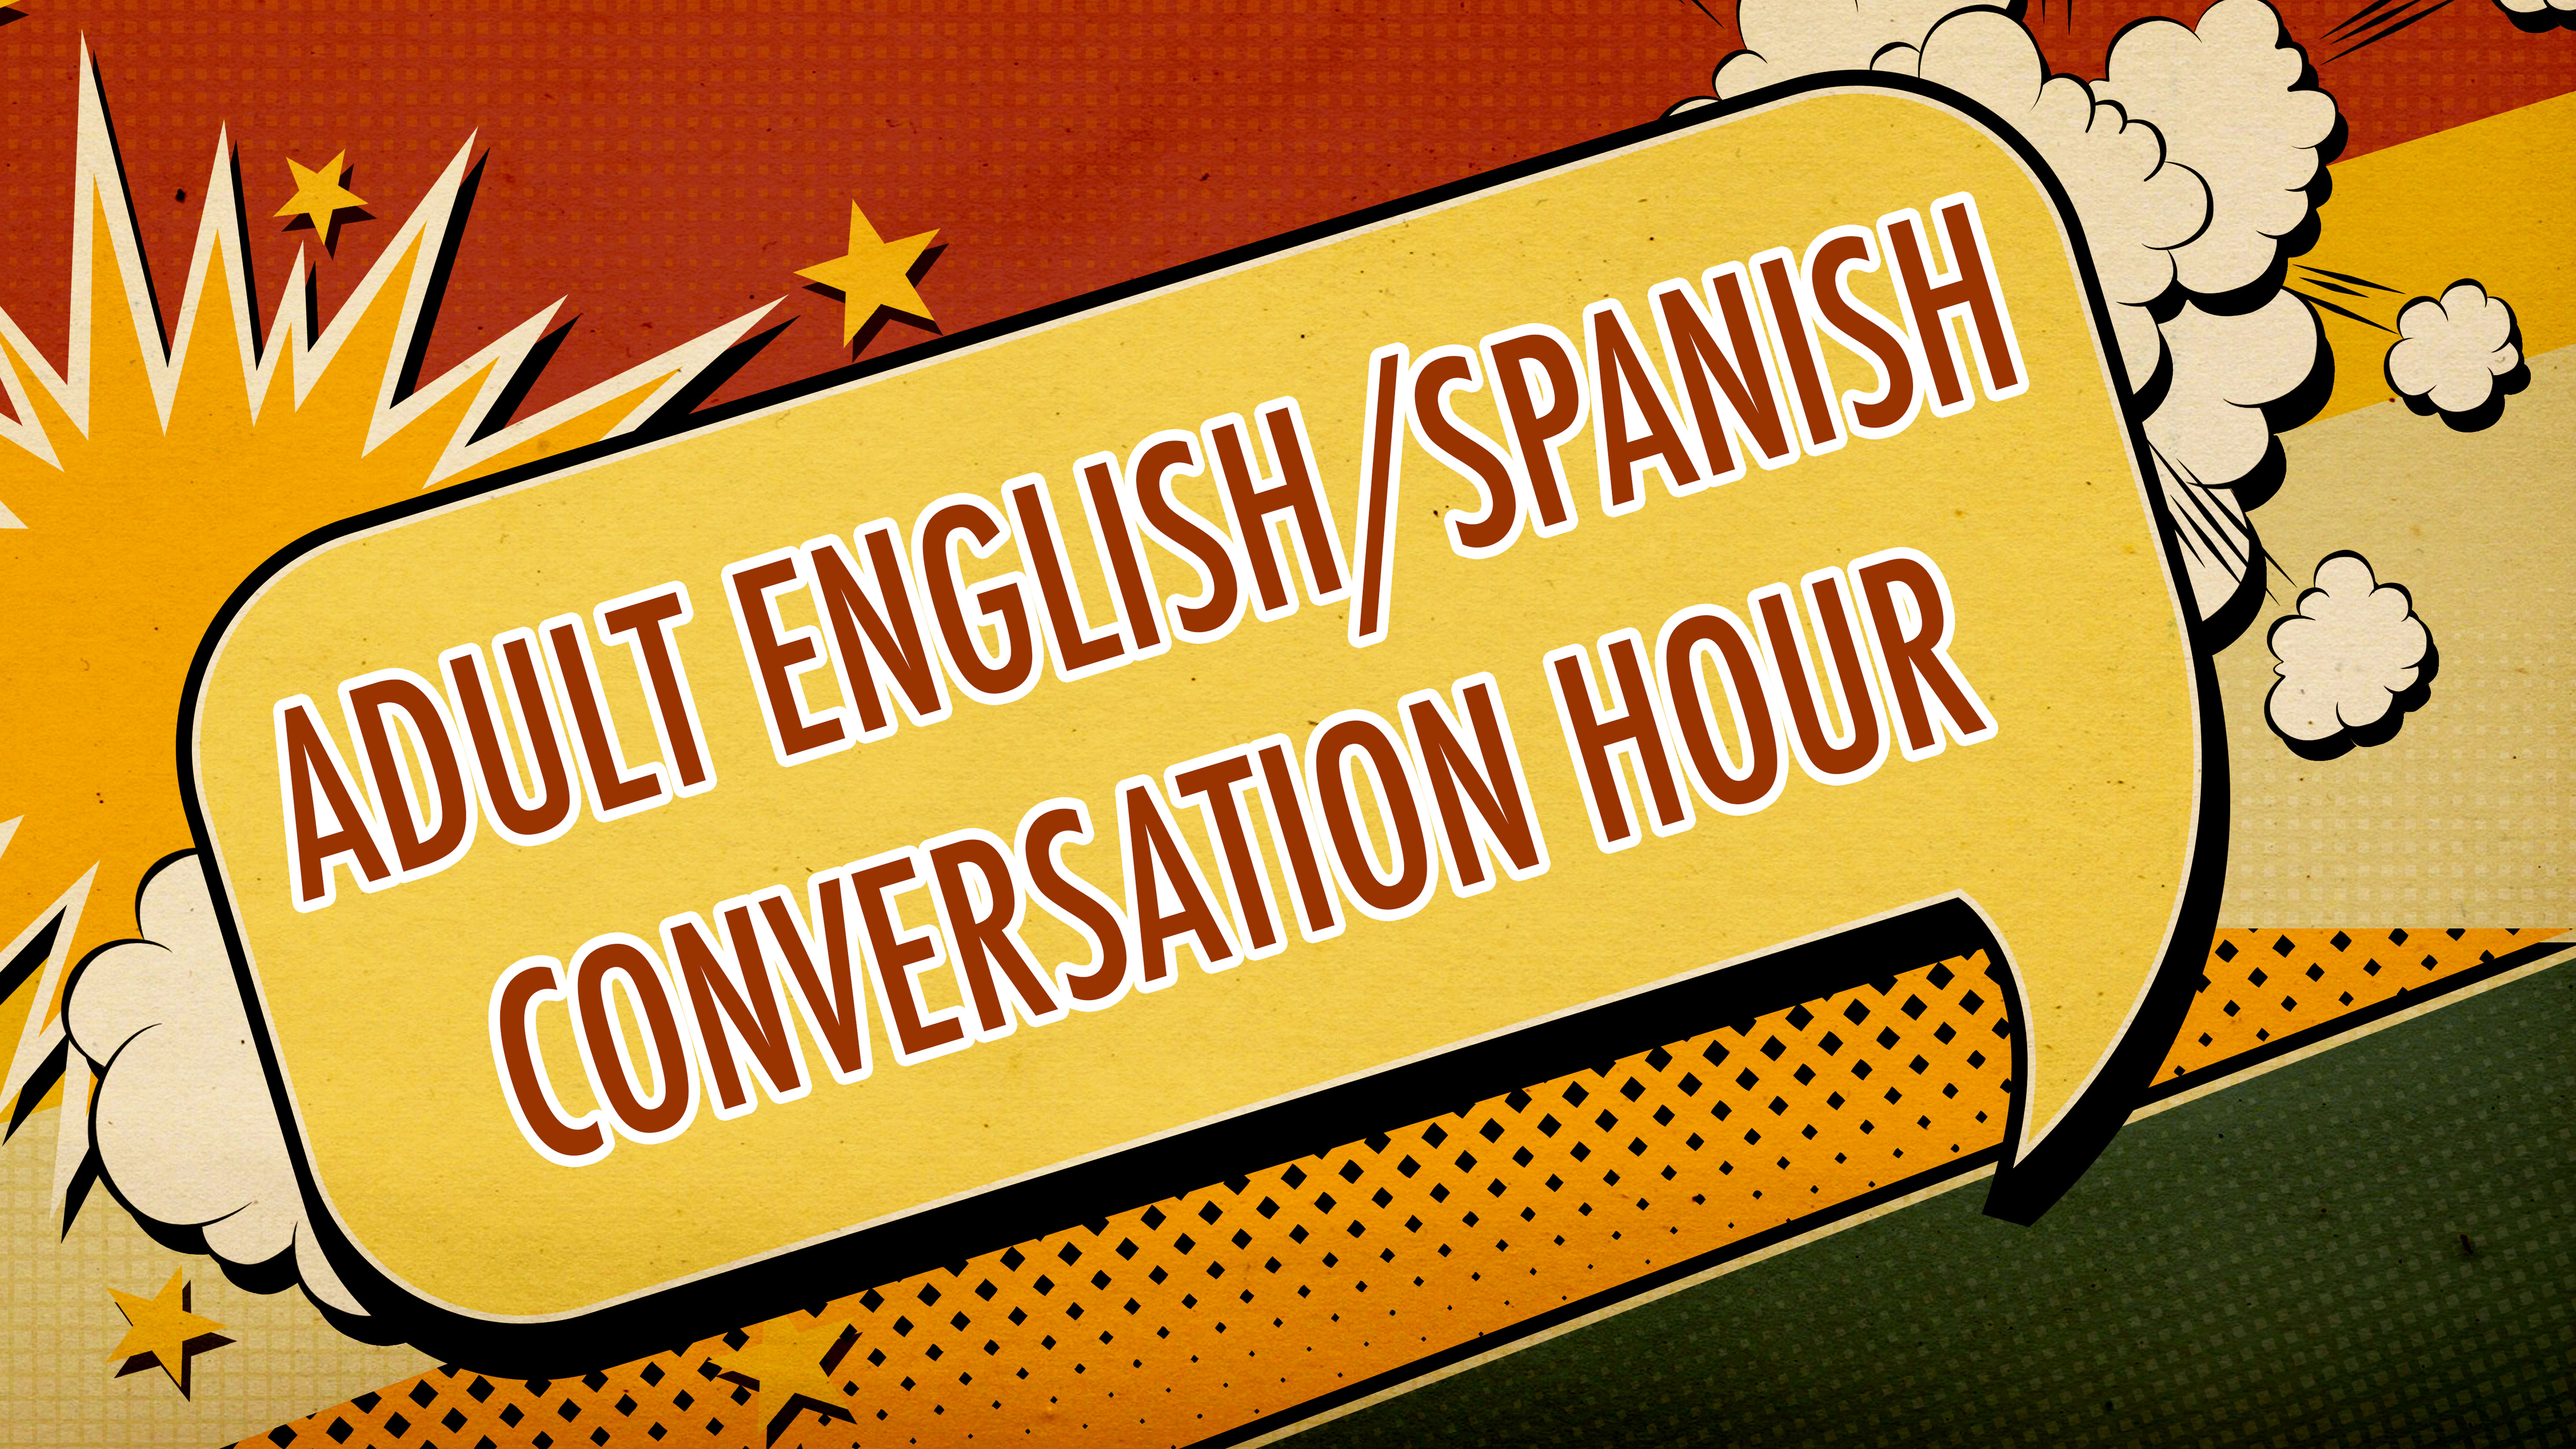 Text bubble says Adult English/Spanish Conversation Hour